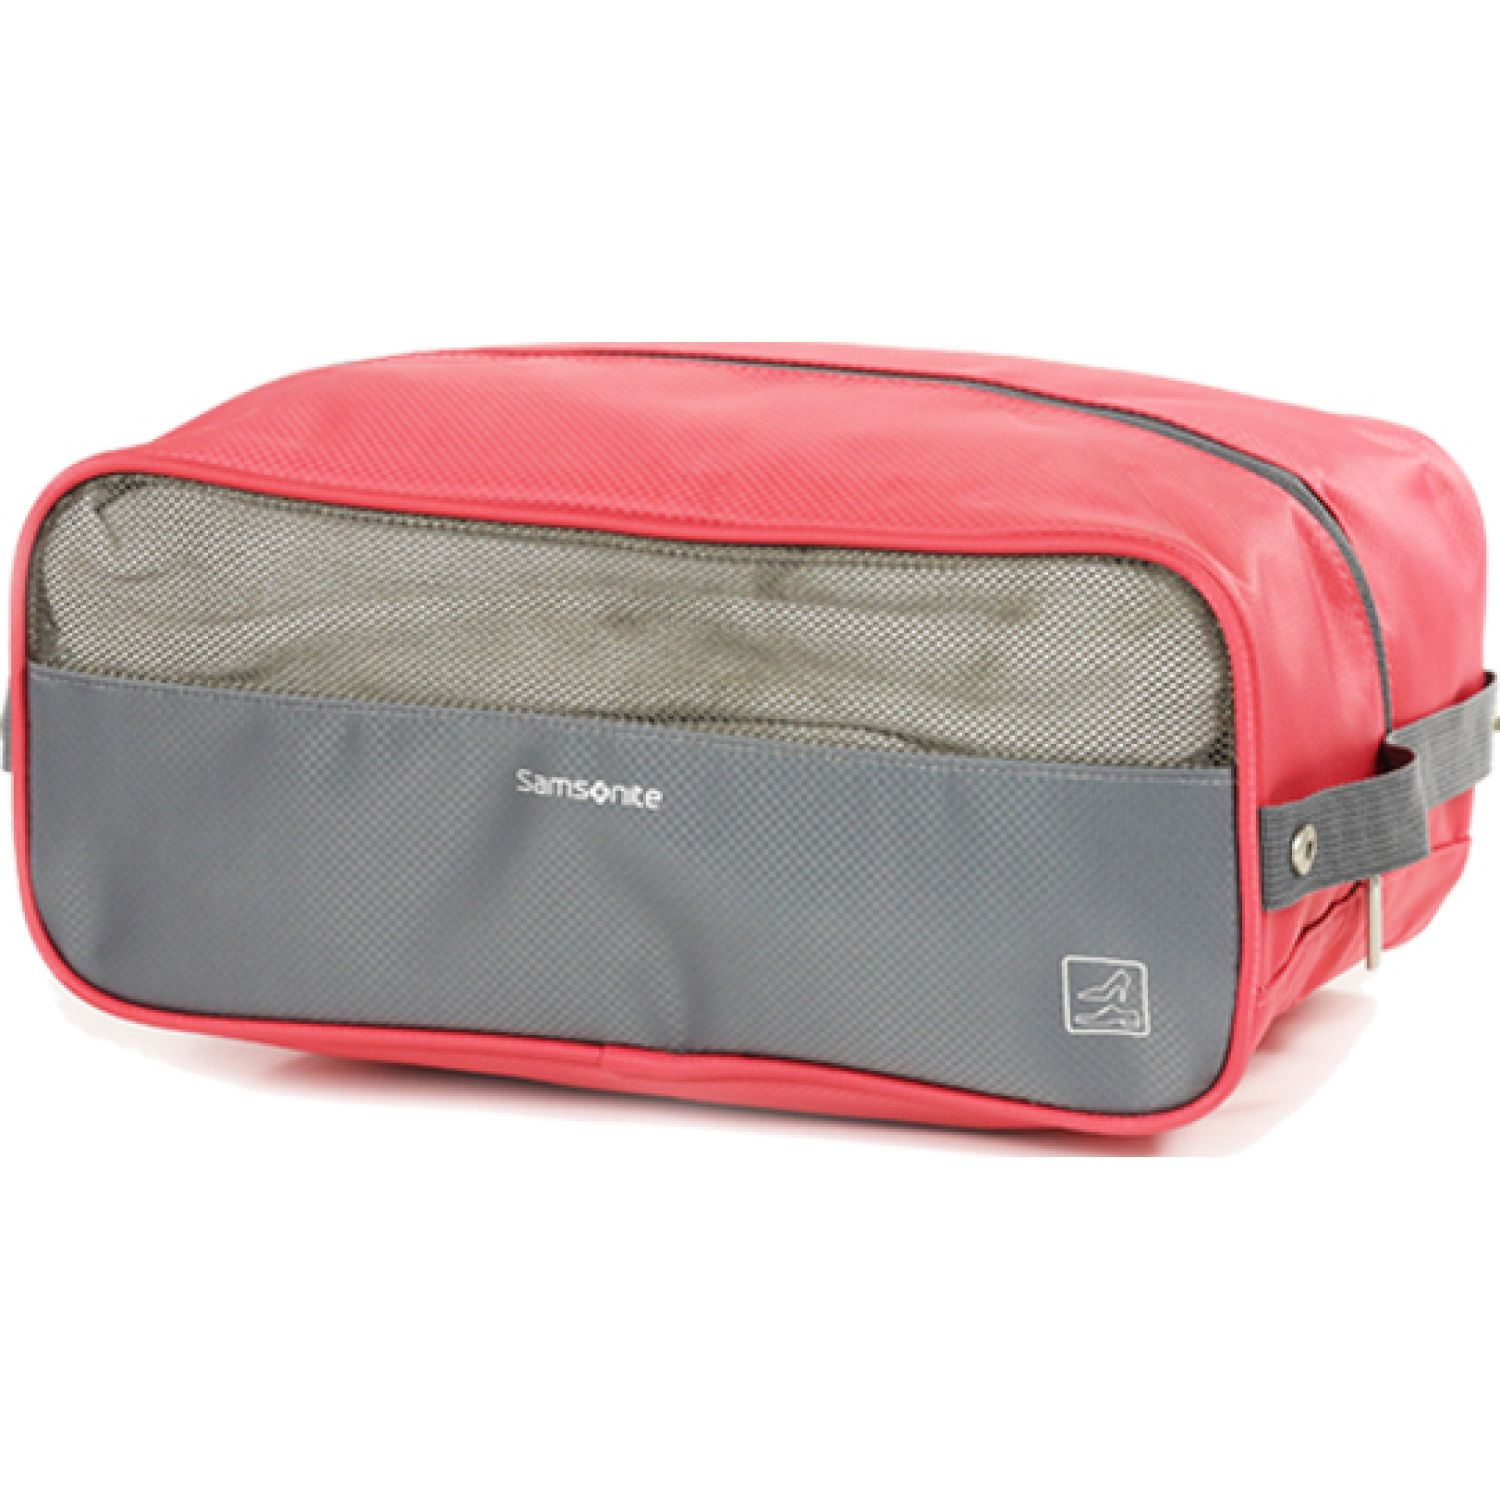 Samsonite Travel Link Acc. Shoe Bag Coral / gris Bolsos de Calzado